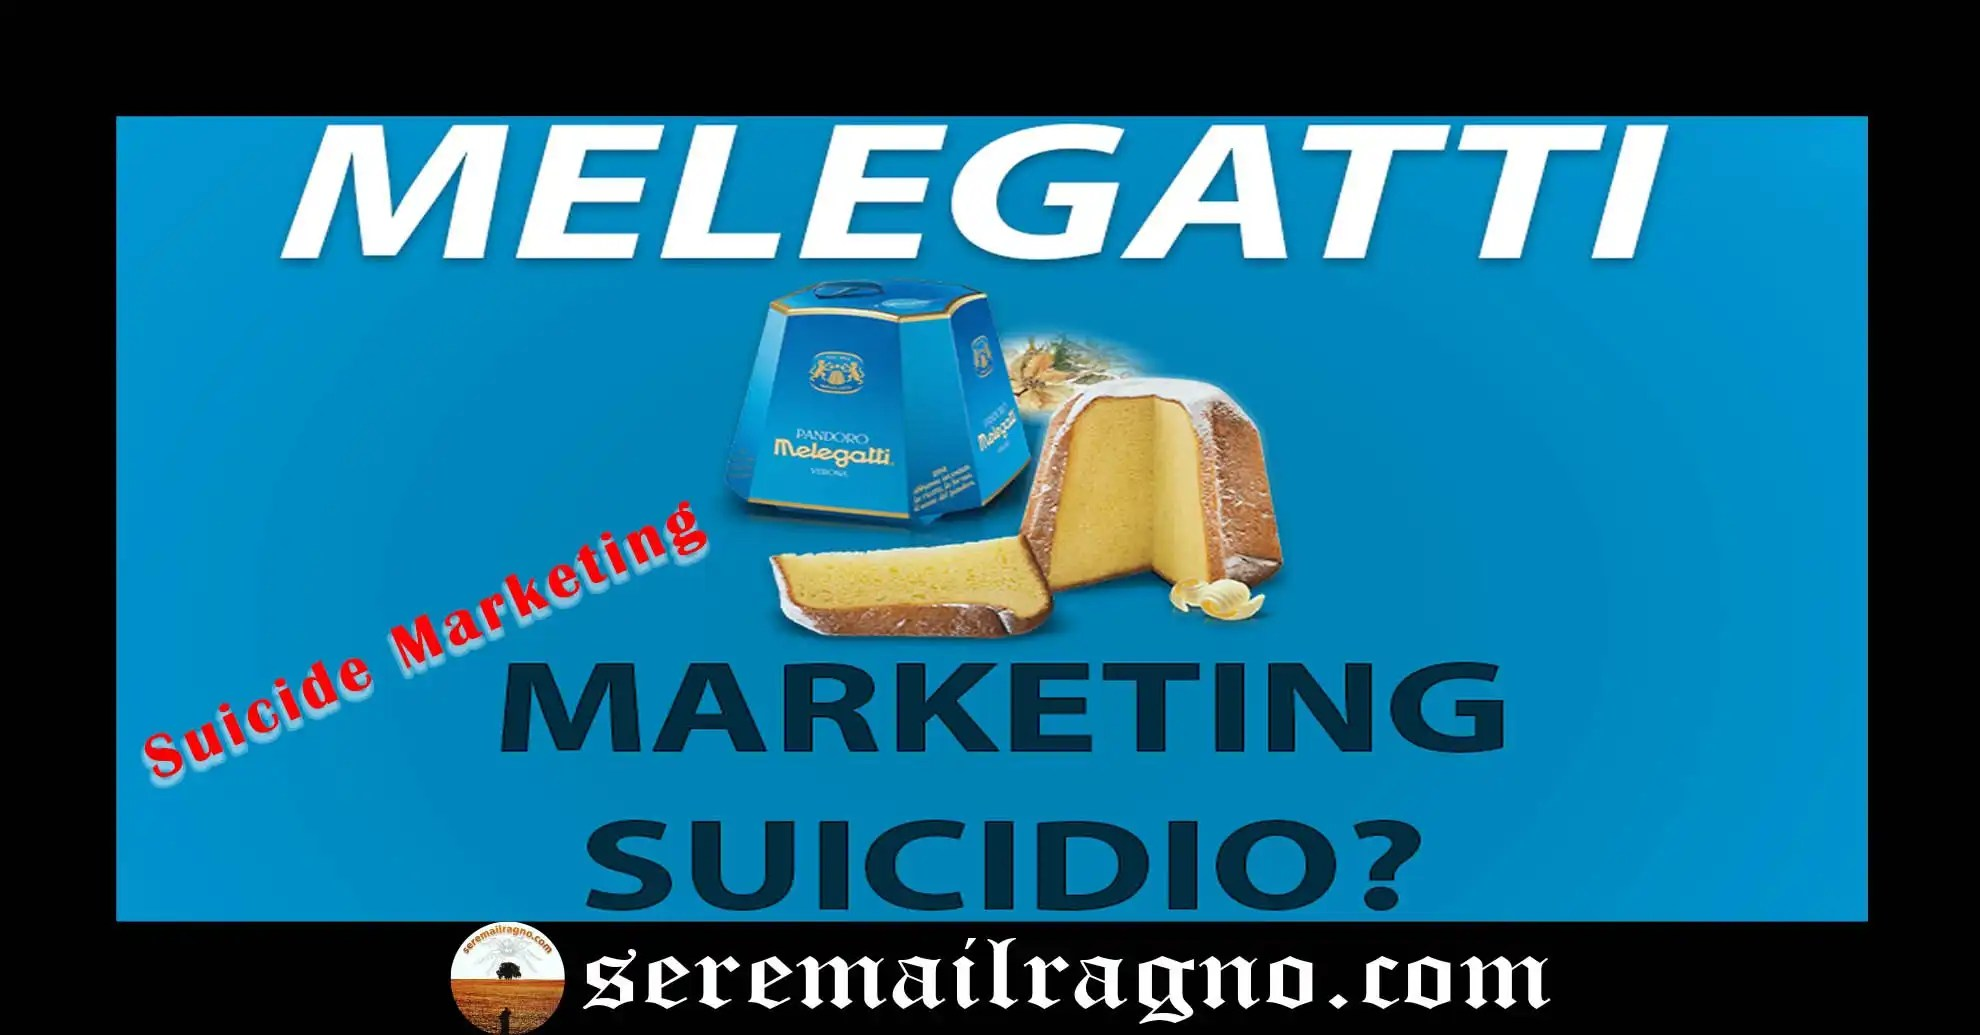 Melegatti: campagna pubblicitaria suicida? Due episodi di Suicide Marketing